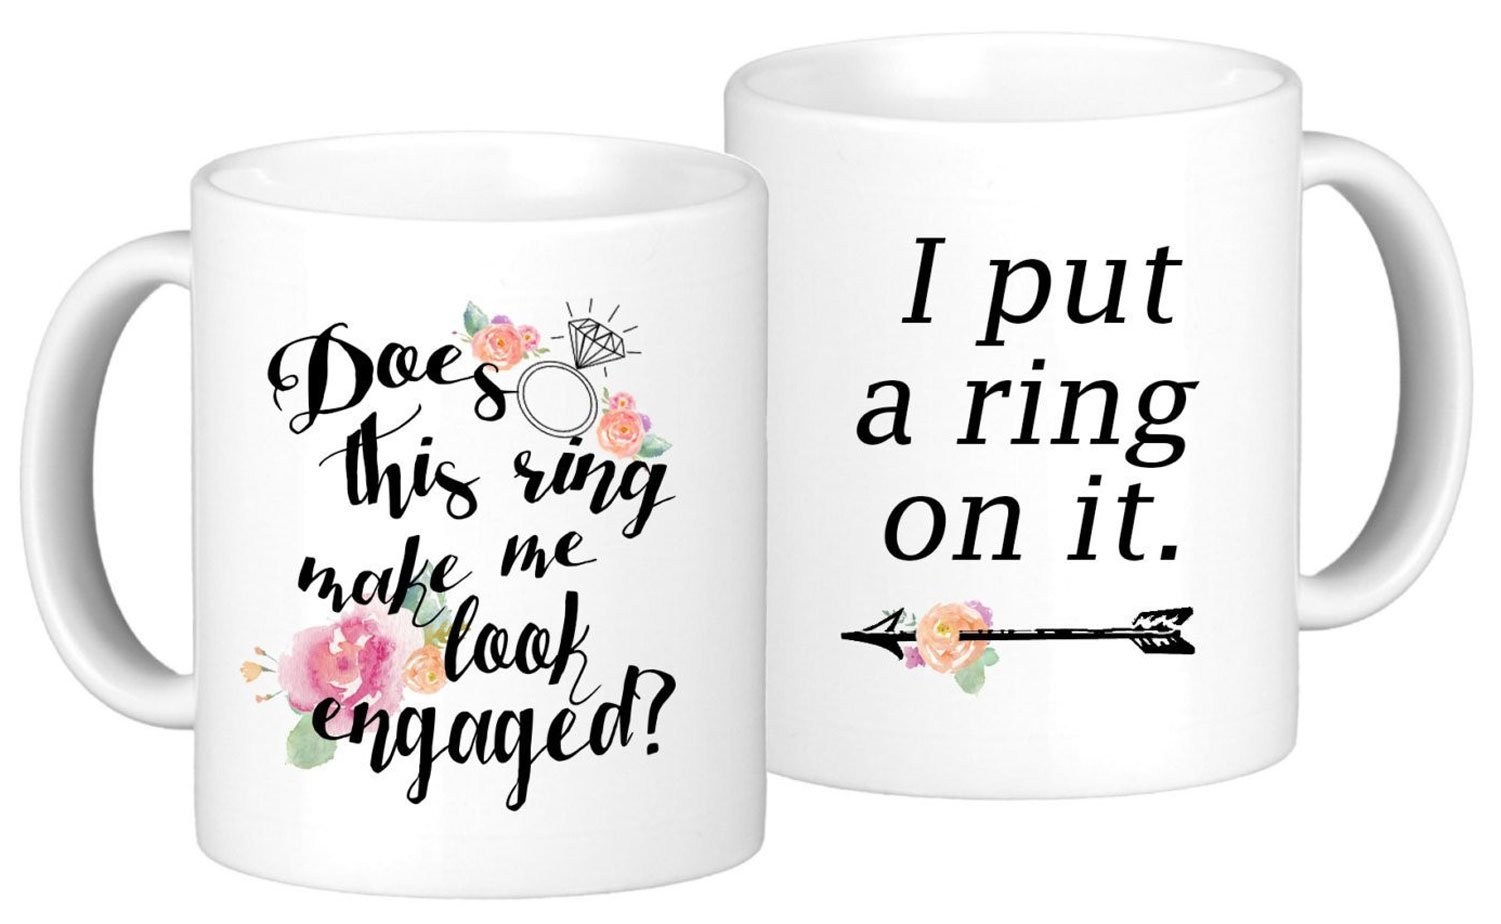 Engagement Coffee Mug Set''Does this ring make me look engaged?'' and''I put a ring on it'' 2 11oz Mugs In White Gift Boxes (SET) Fiance Gifts For Her Valentines Day Present Bride To Be Mug